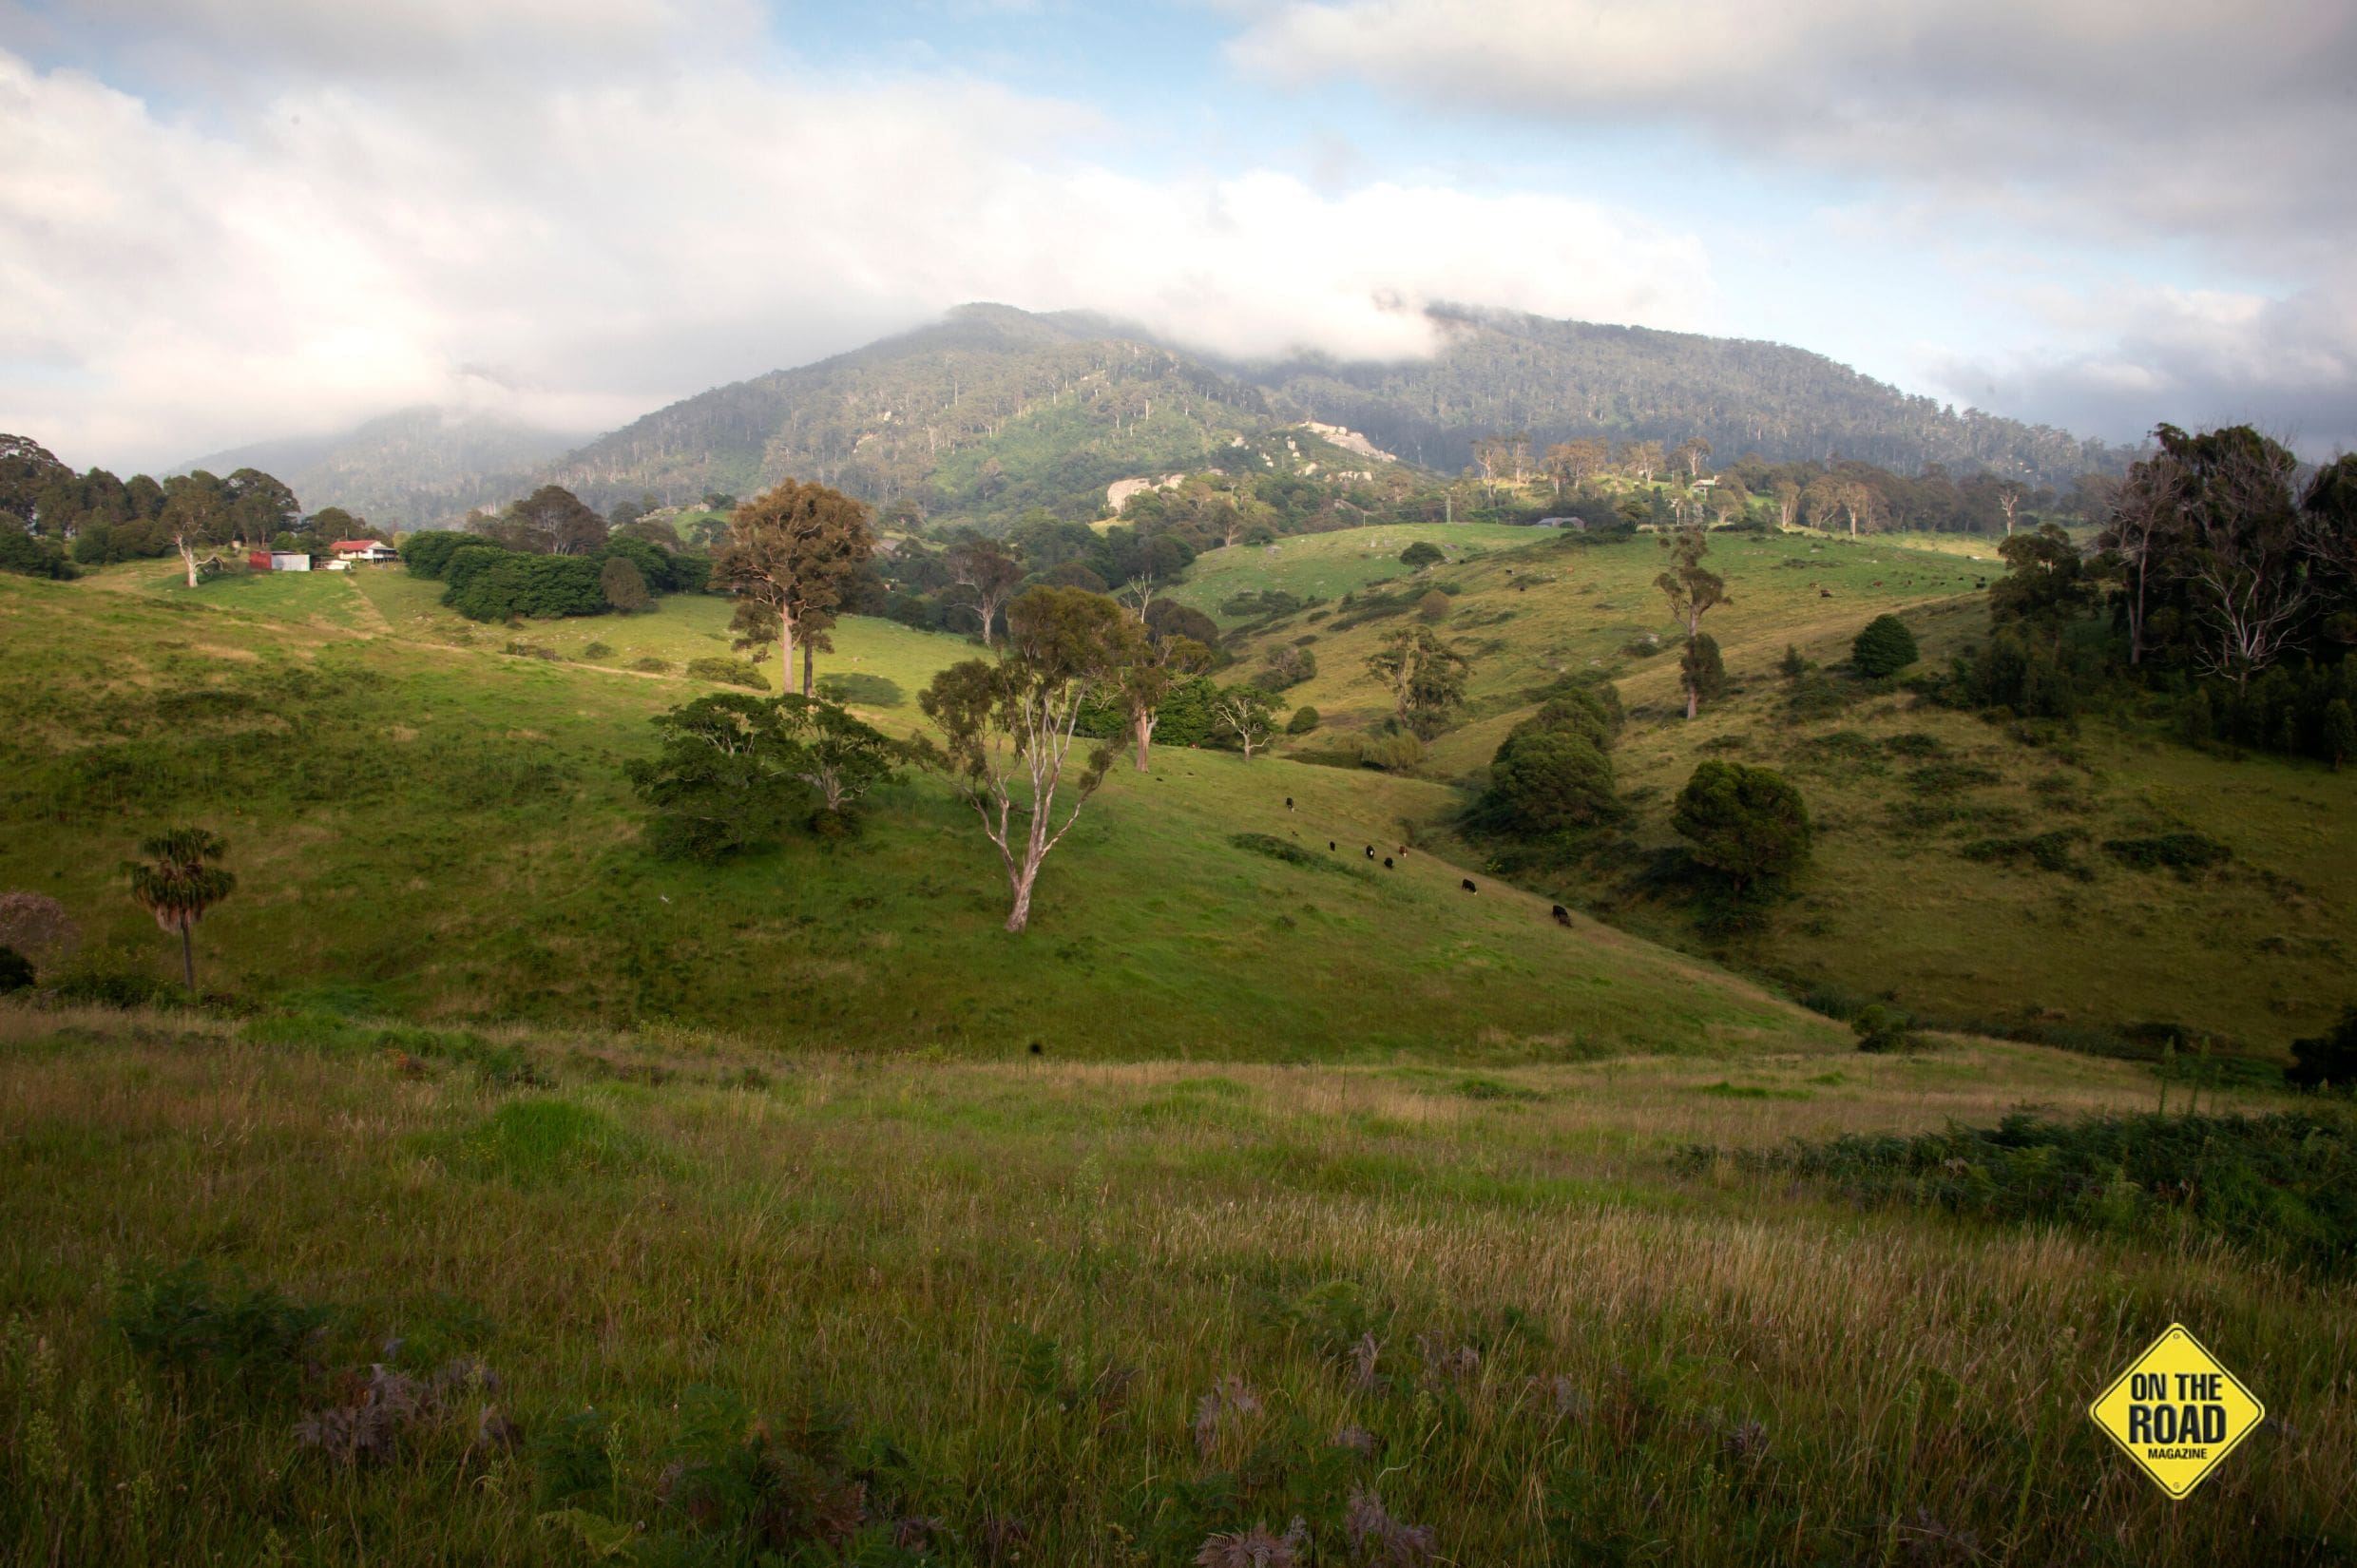 Mt Gulaga overlooking the beautiful undulating pastures in the Tilba region